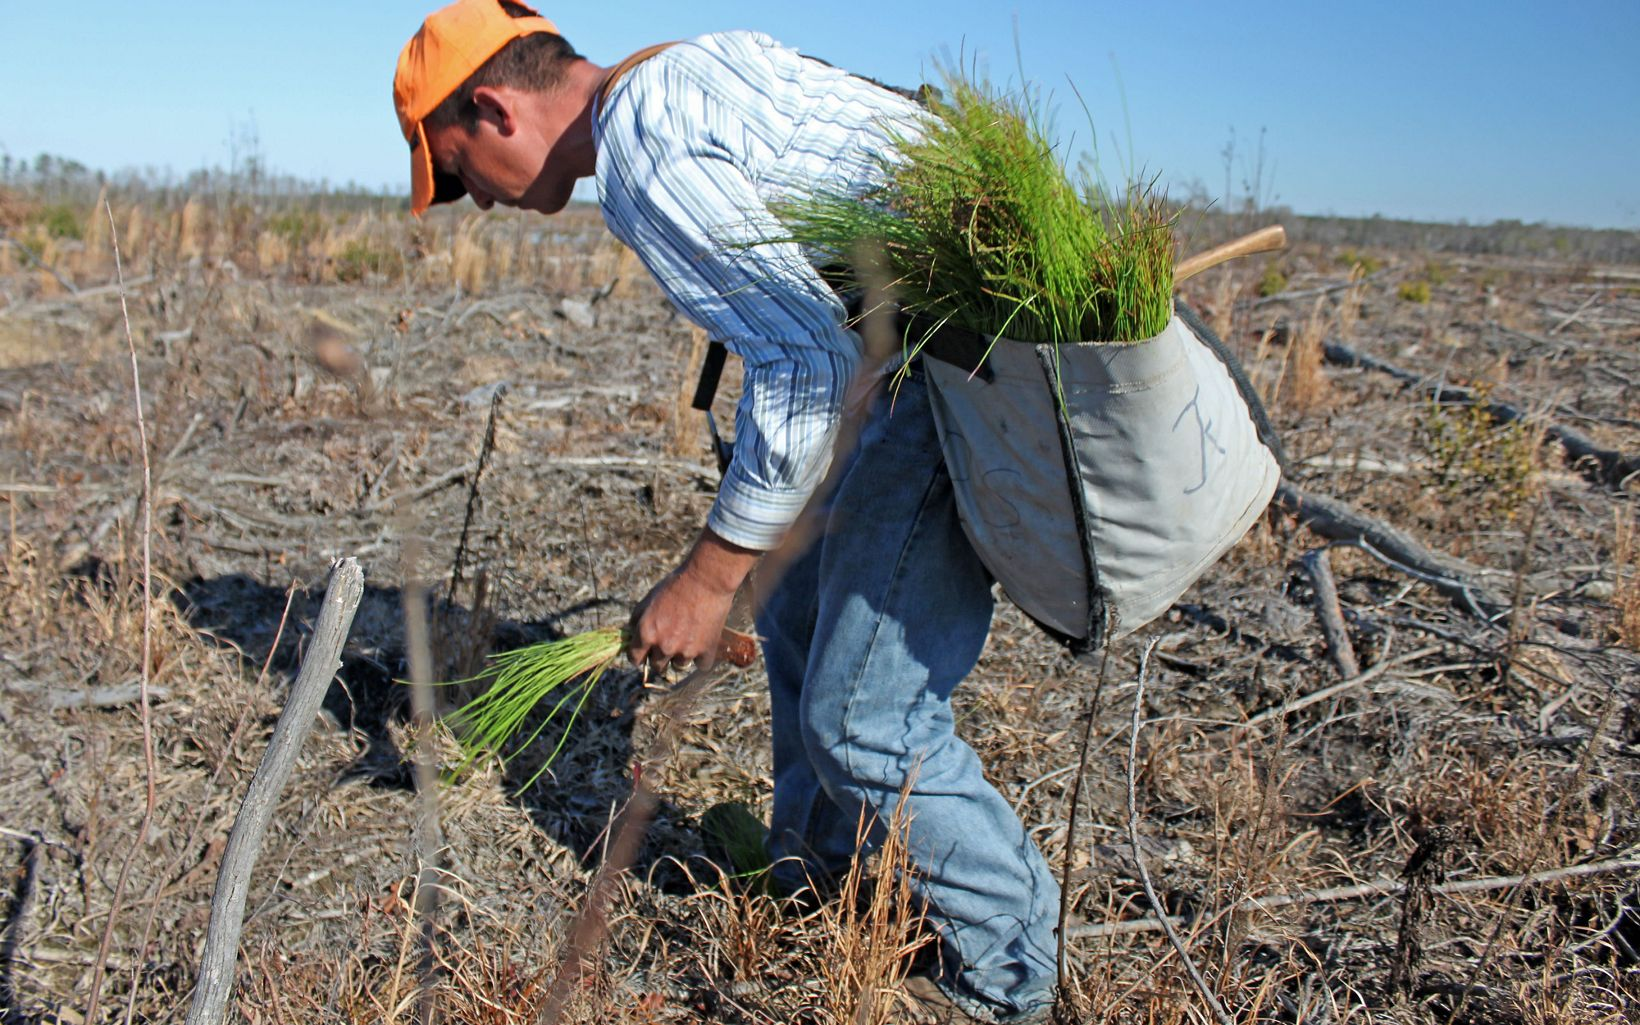 A worker carries a white tote full of longleaf pine seedlings. He is stooping over to plant a seedling in a prepared hole.